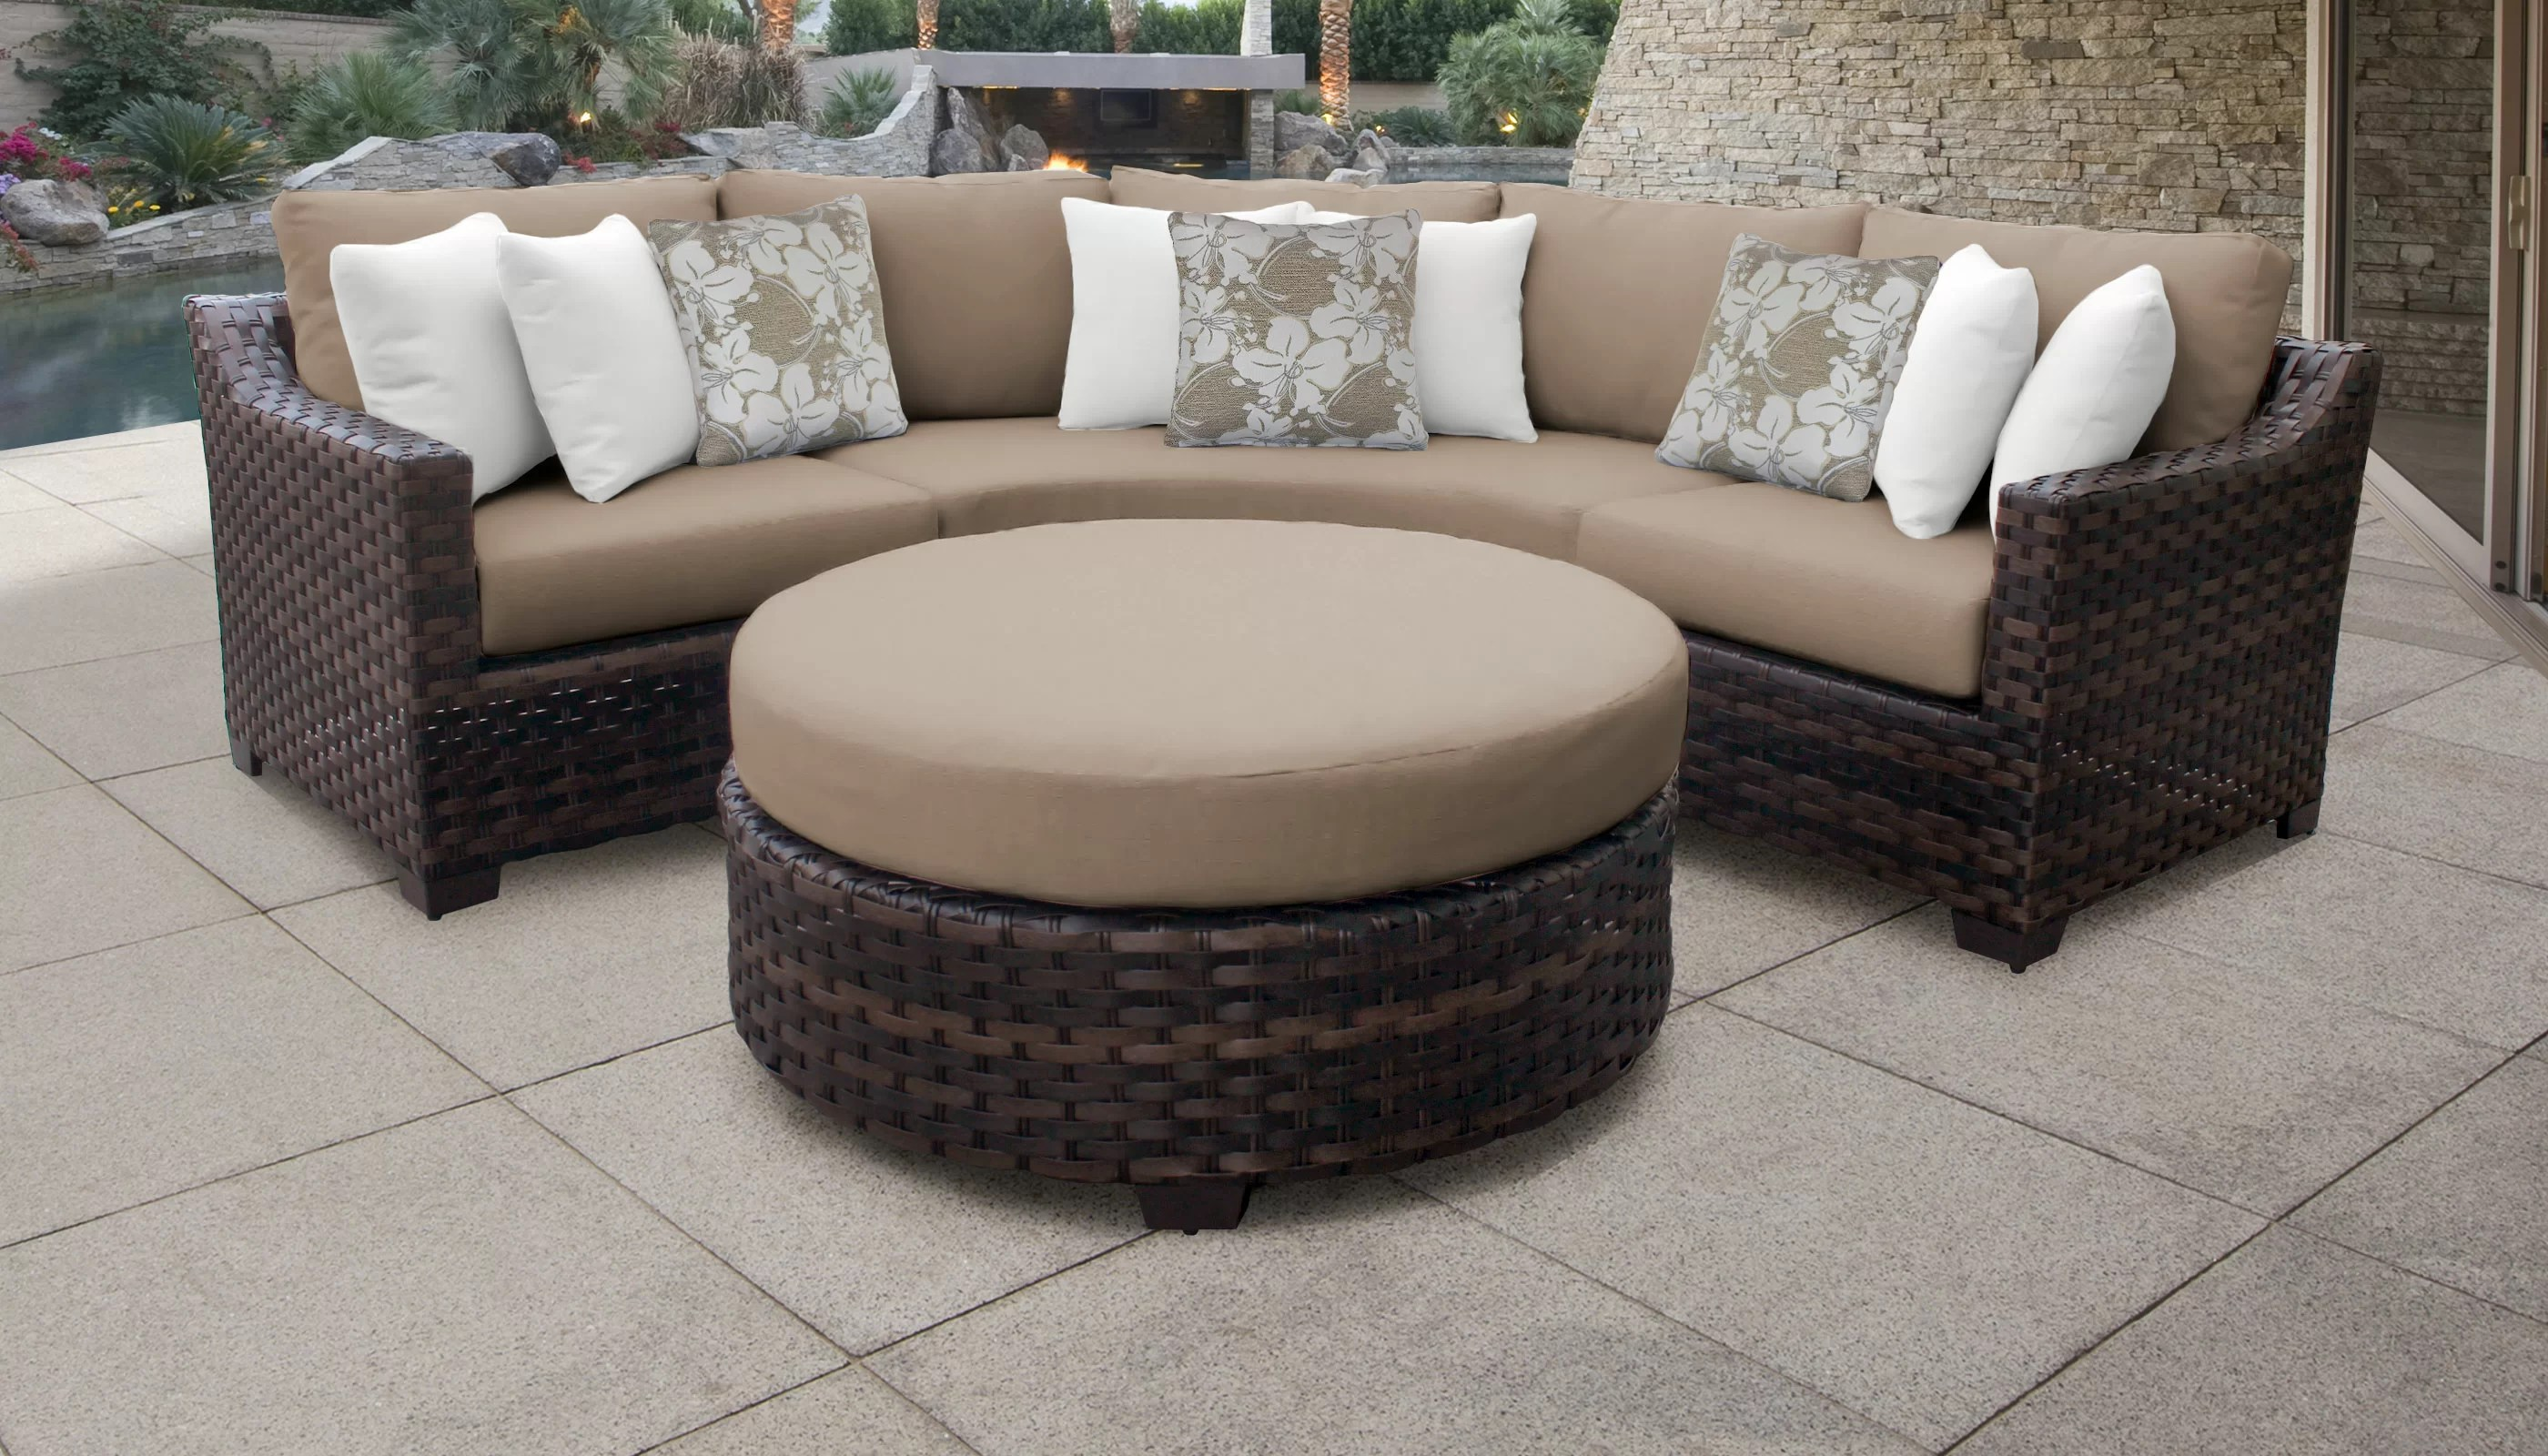 Rattan Corner Sofa Ireland Kathy Ireland Homes Gardens River Brook 4 Piece Outdoor Wicker Patio Furniture Set 04b